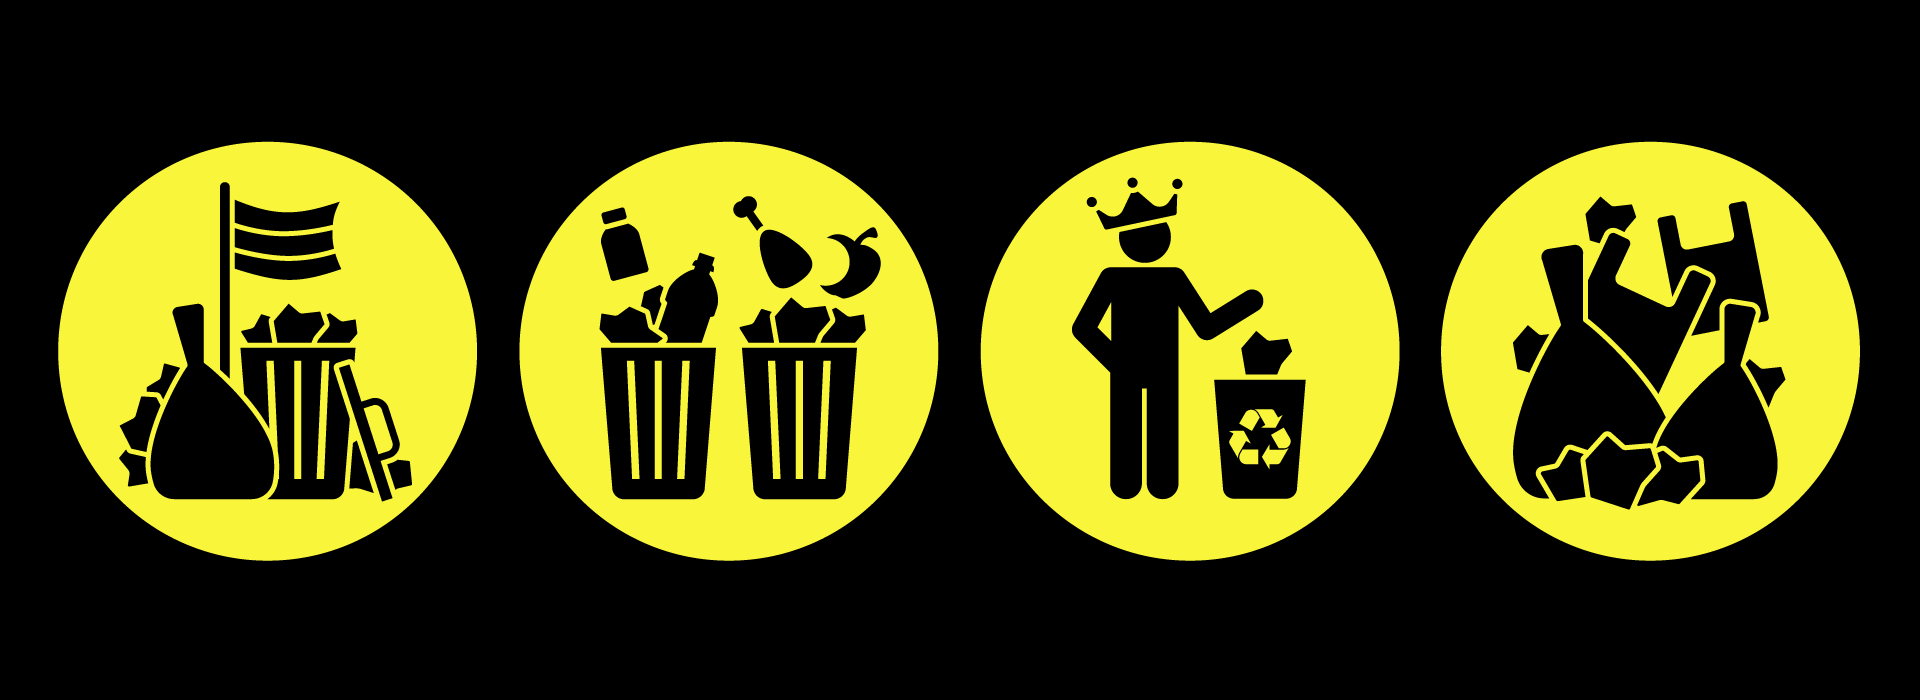 trash-icons